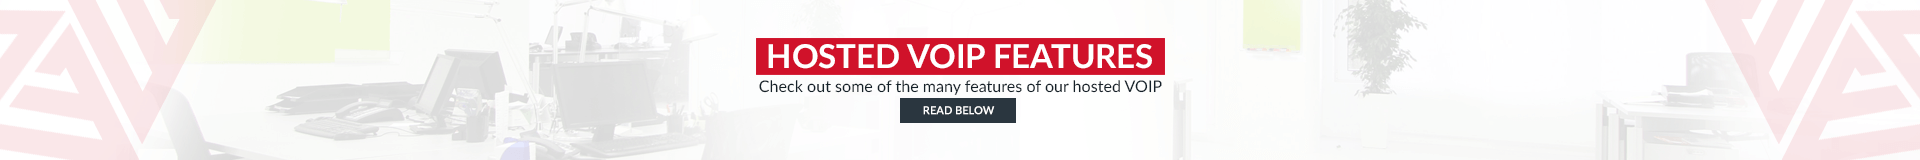 Find out about the latest VOIP features and how they can benefit your business